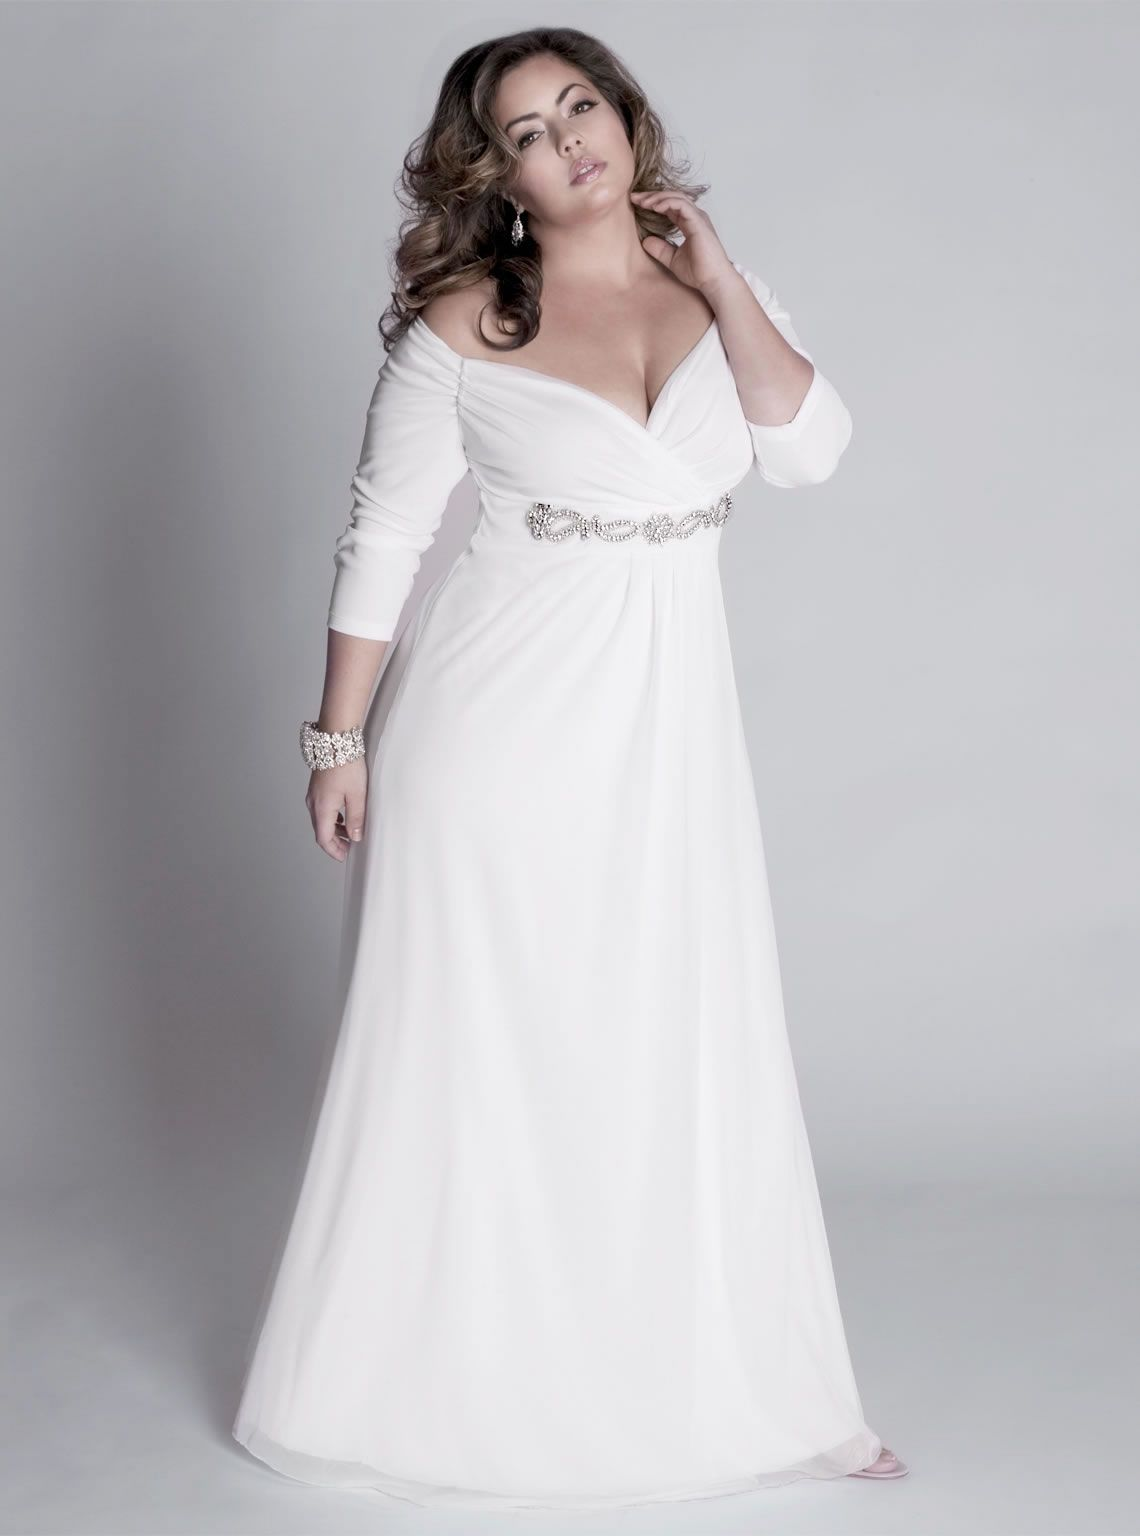 3 4 Sleeve Plus Size Evening Gowns From Darius Custom Dresses Plus Size Wedding Dresses With Sleeves Casual Wedding Dress Wedding Dress Long Sleeve [ 1536 x 1140 Pixel ]